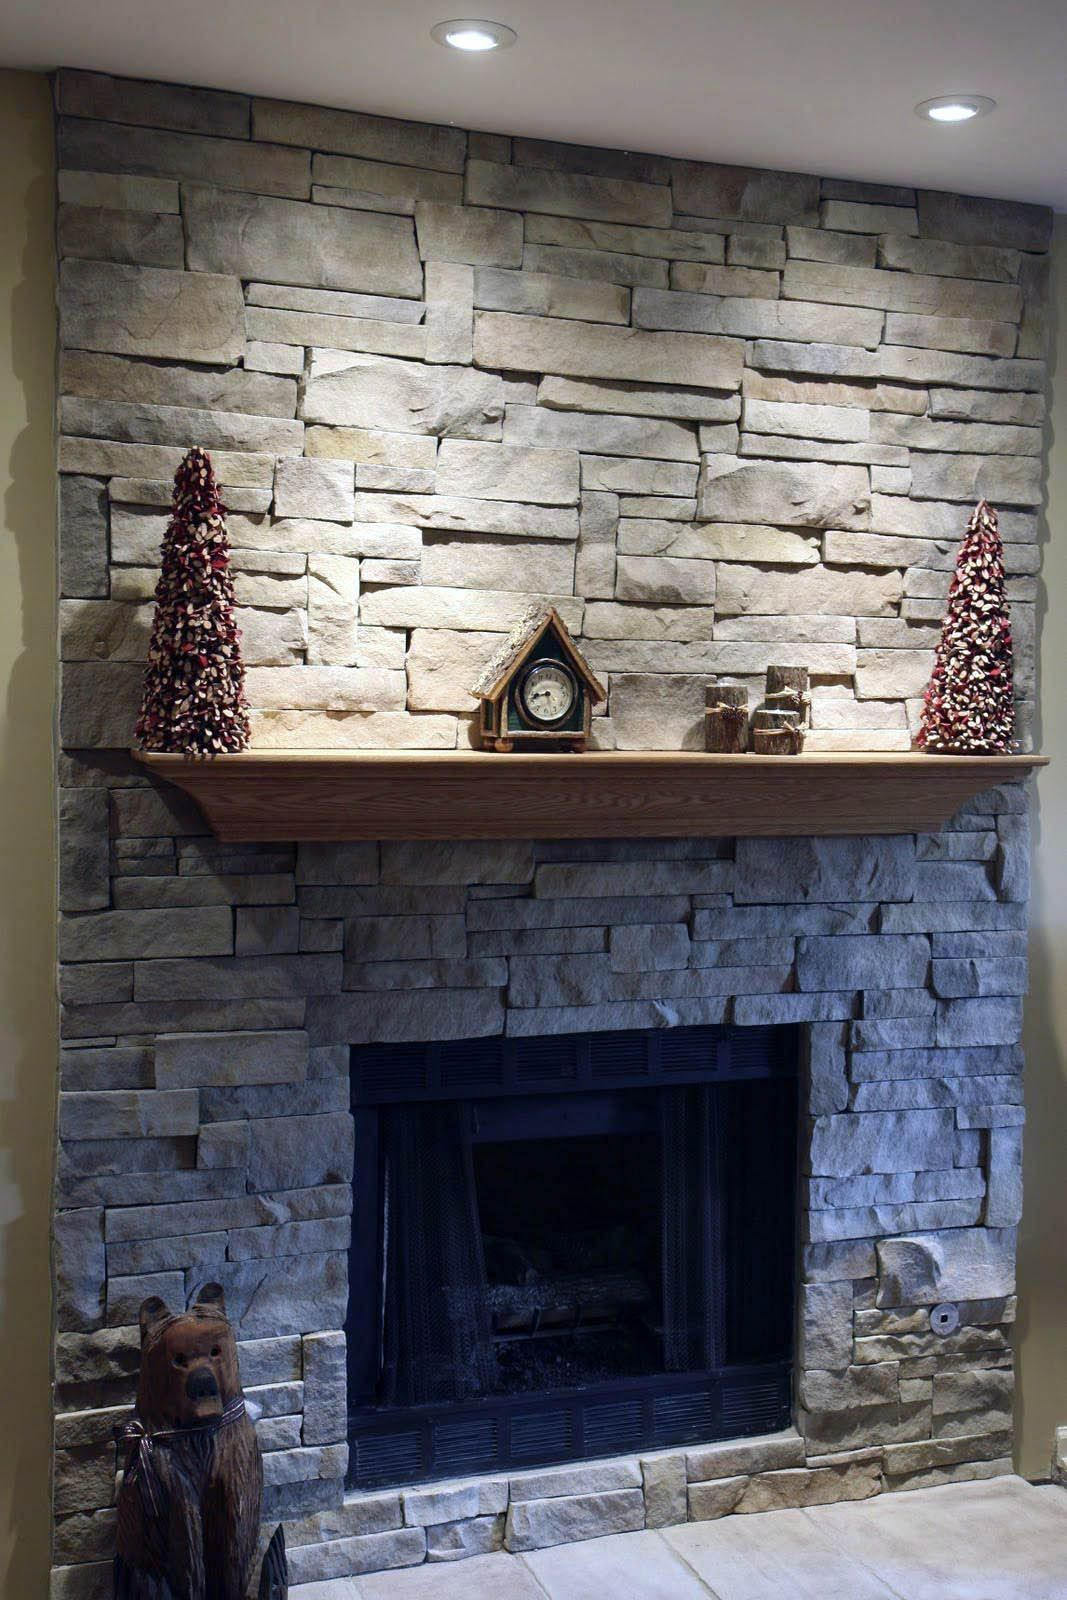 Pin By Casandra Ya Eckelman On Making Your Bricks On Fireplace Lighter Stone Veneer Fireplace Stacked Stone Fireplaces Stone Fireplace Wall